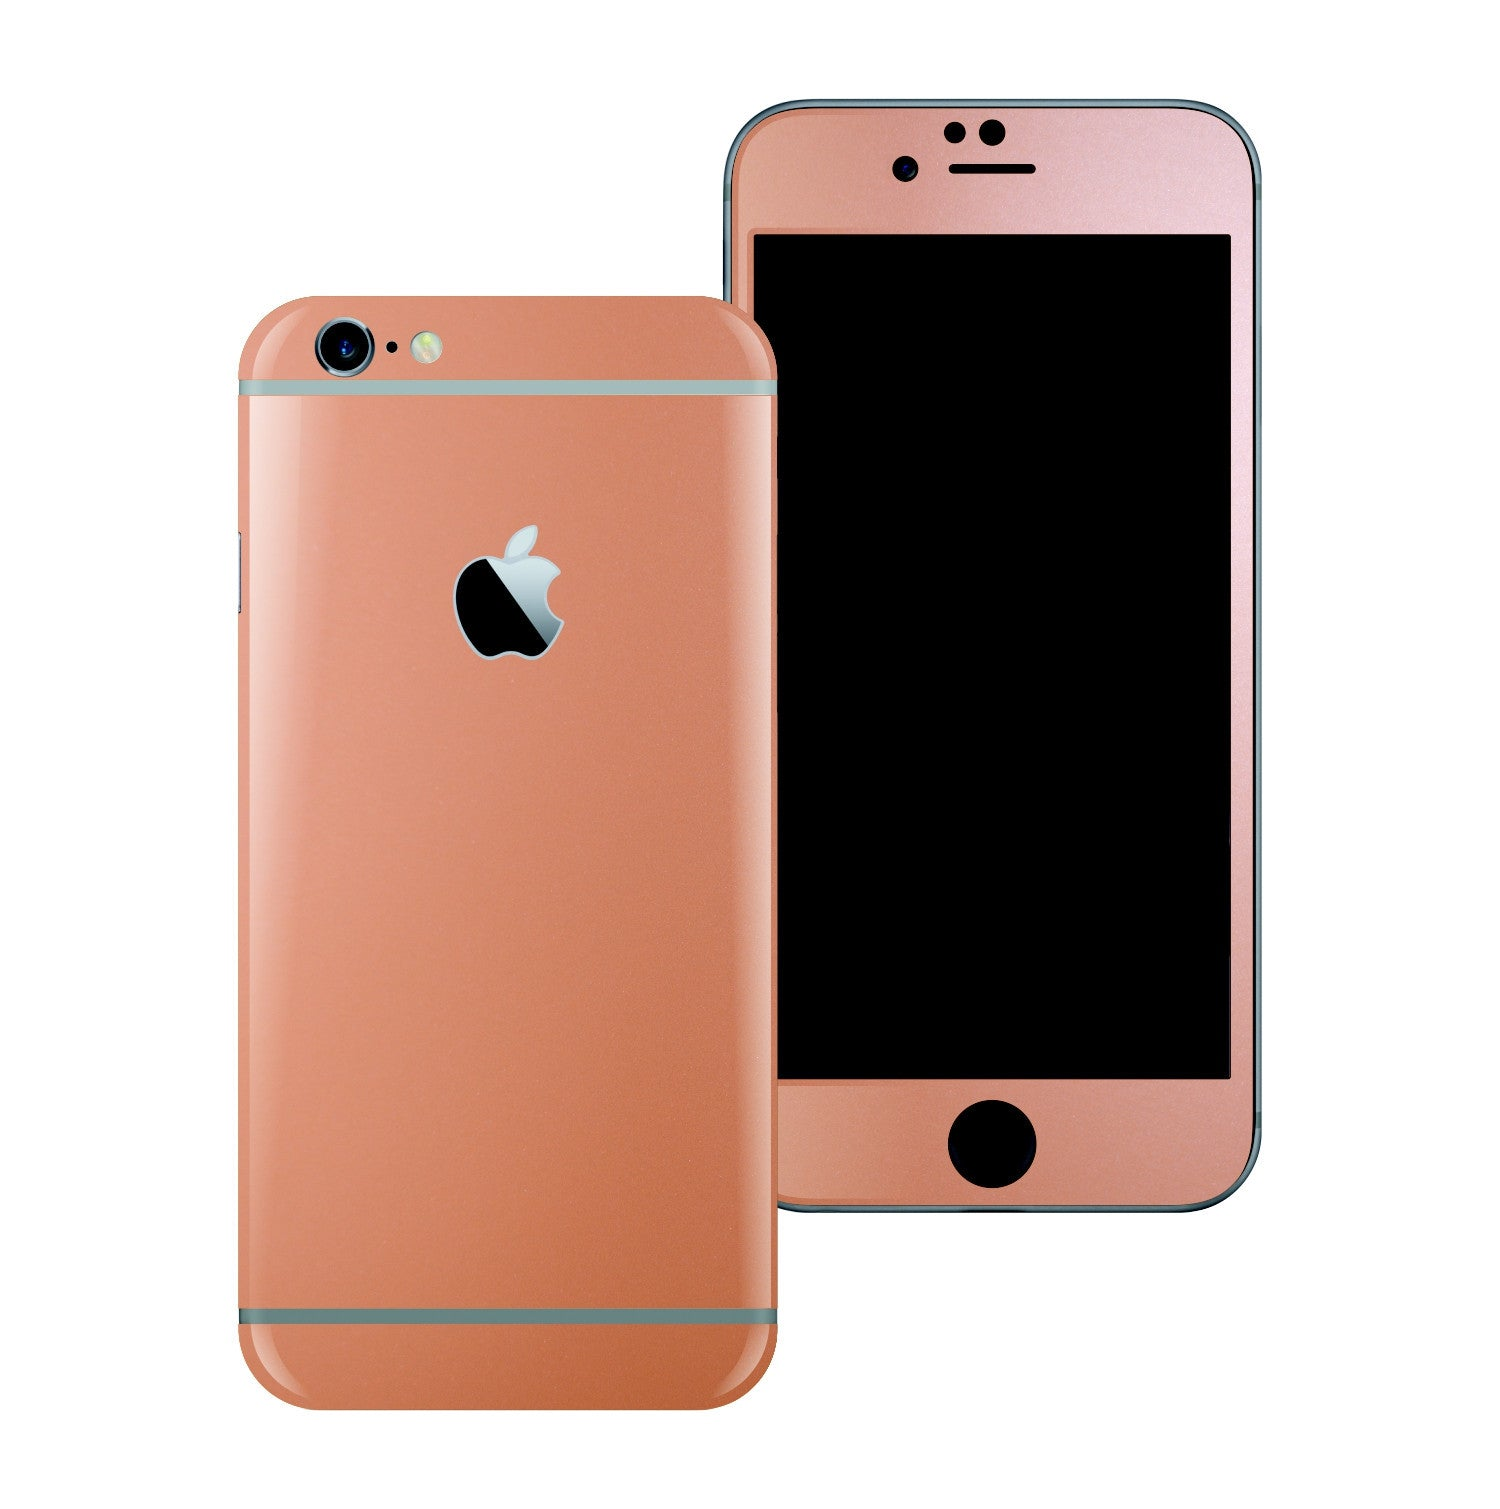 iphone 6 plus rose gold matt metallic skin wrap decal. Black Bedroom Furniture Sets. Home Design Ideas